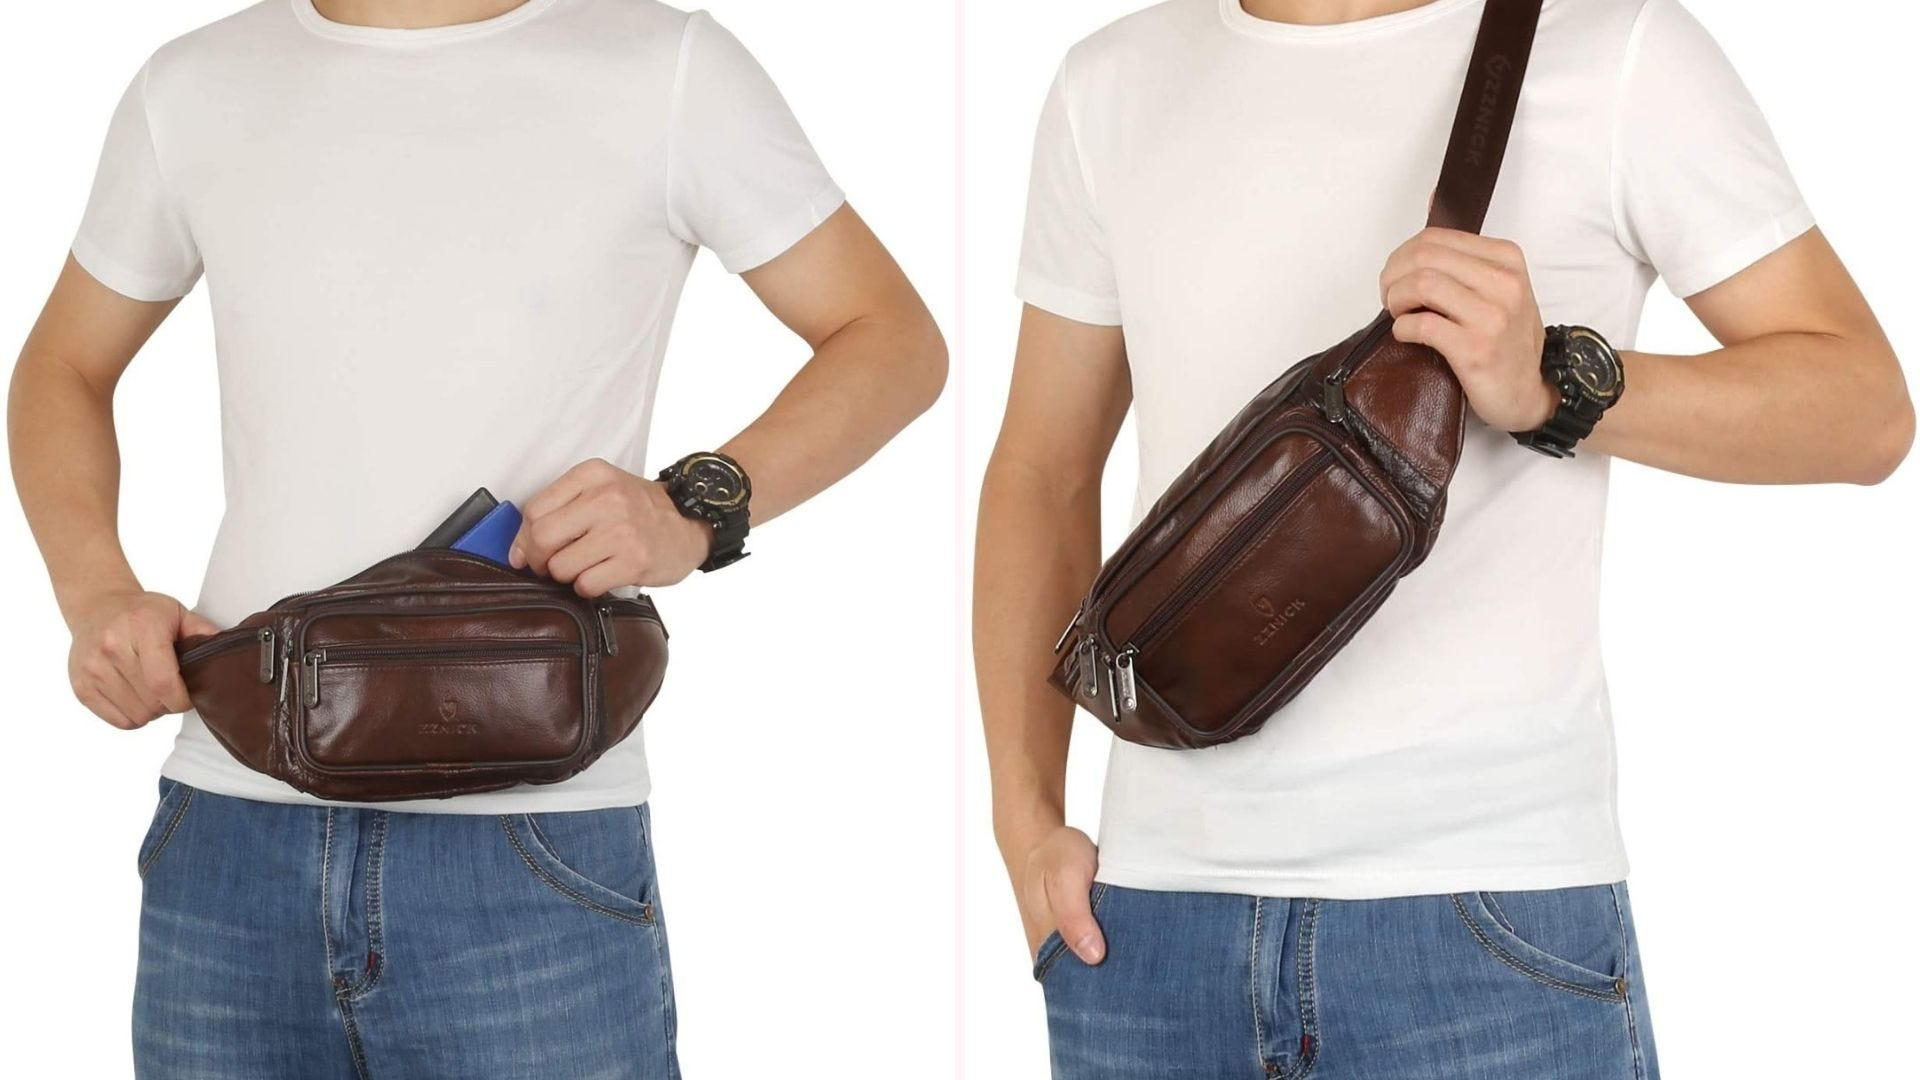 A man wearing the ZZNICK leather fanny pack at the waist and as a crossbody bag.